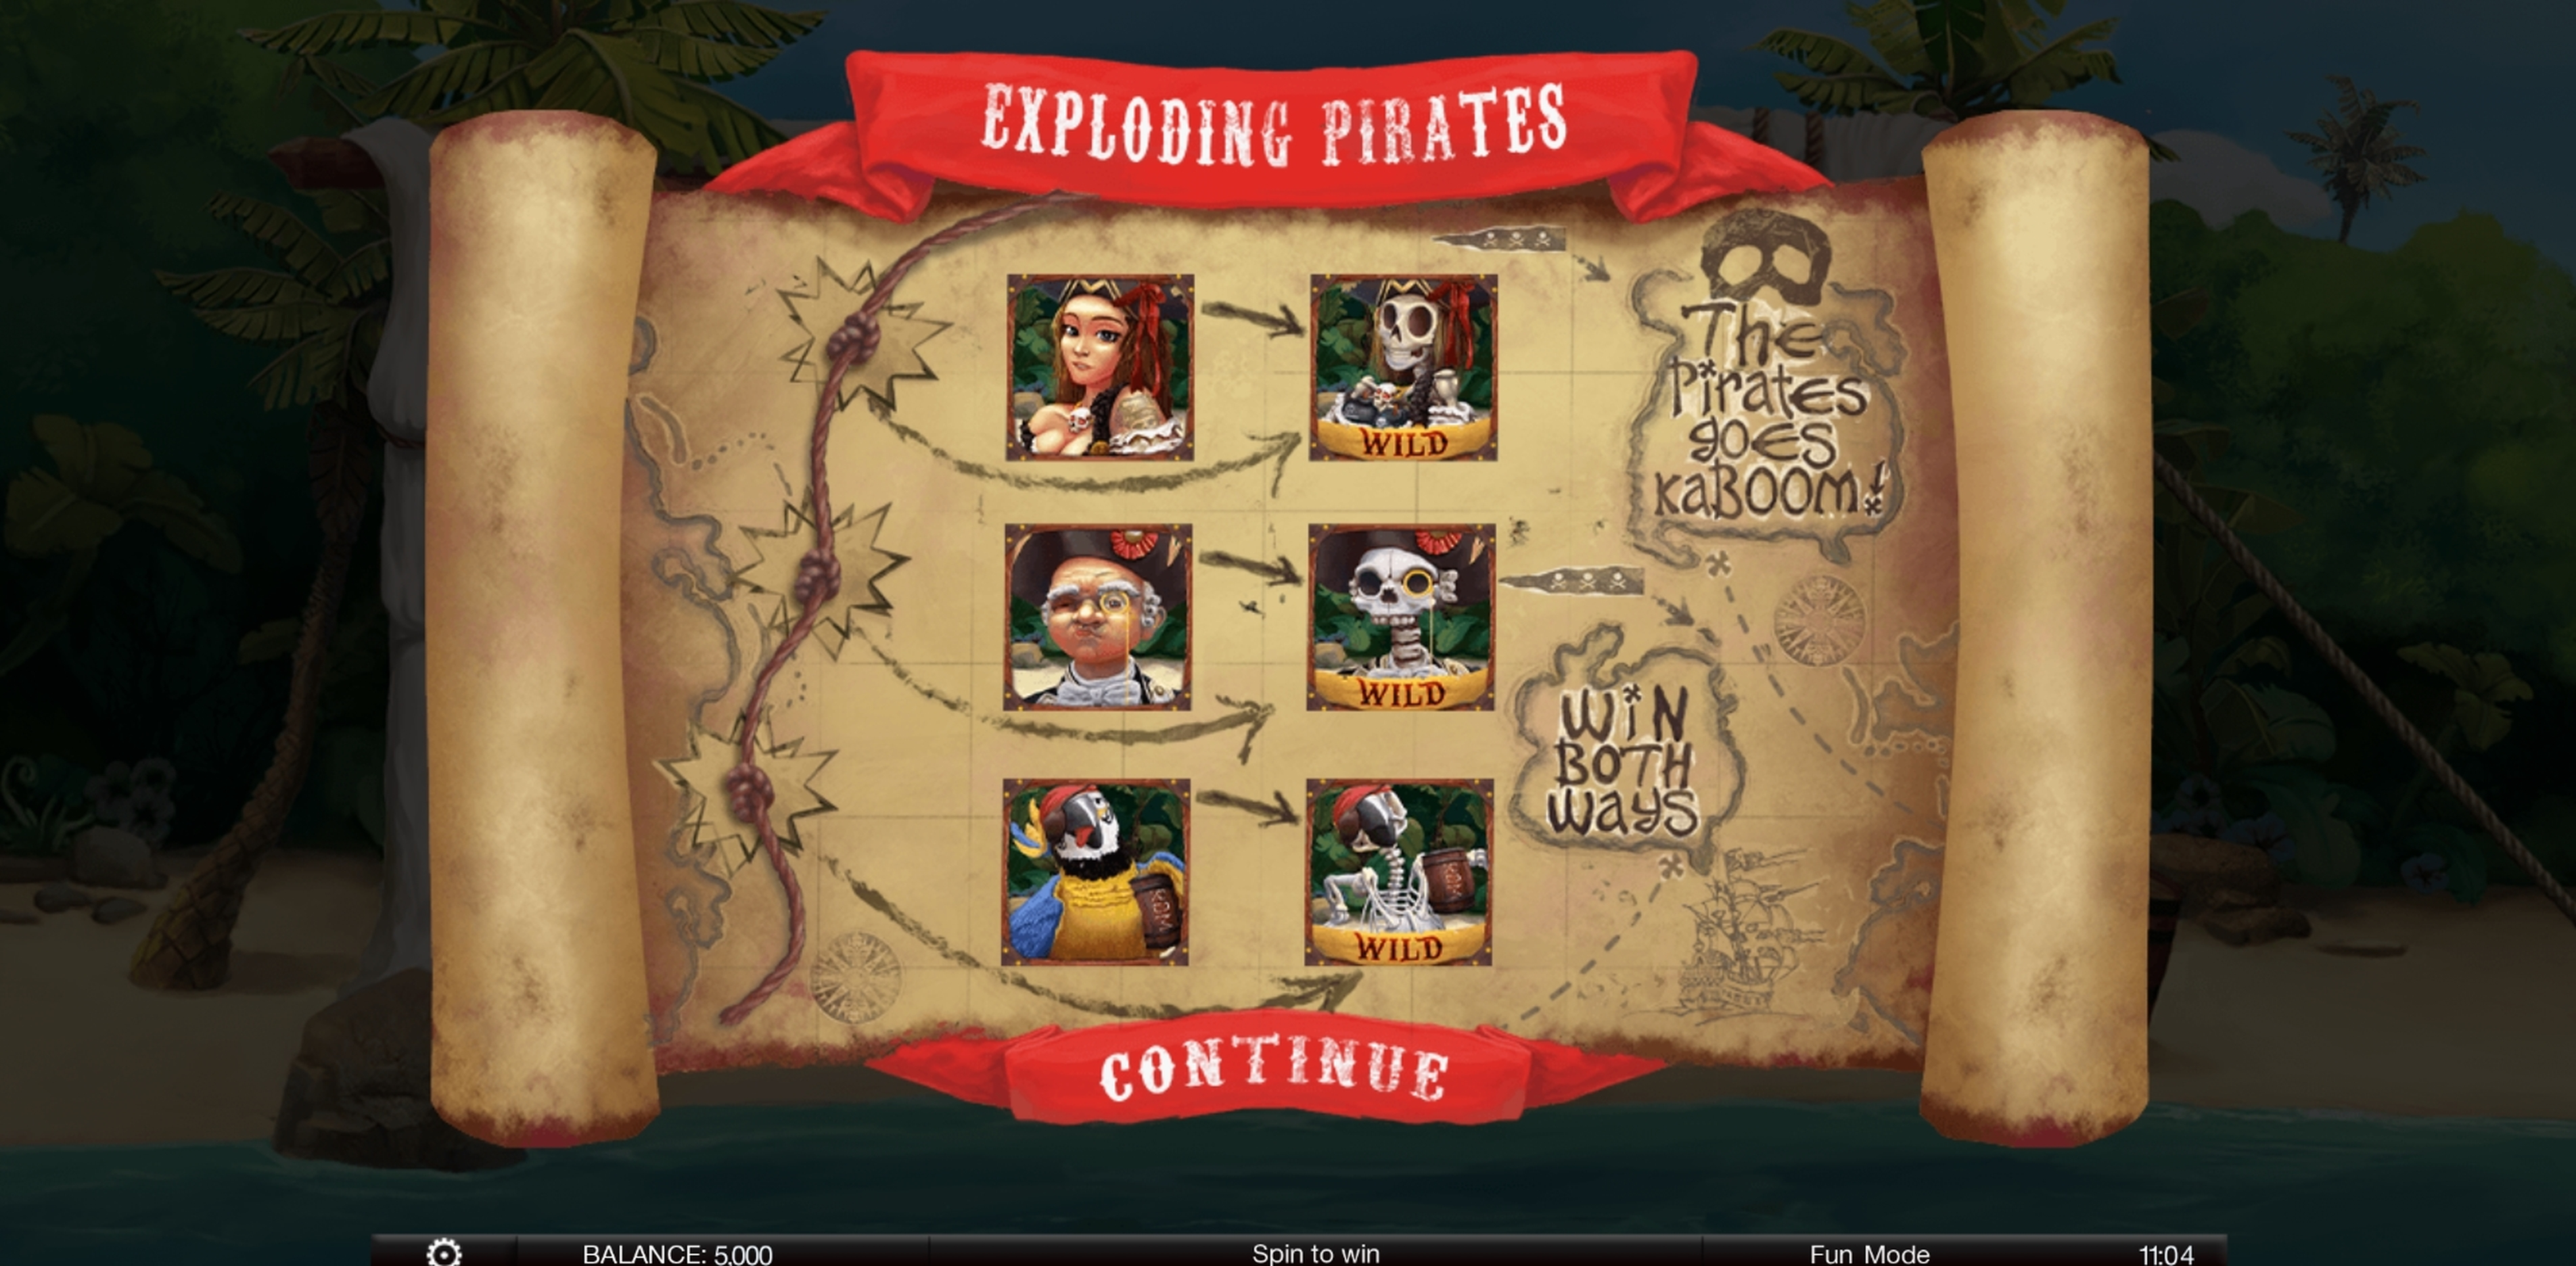 Play Exploding Pirates Free Casino Slot Game by Spinomenal